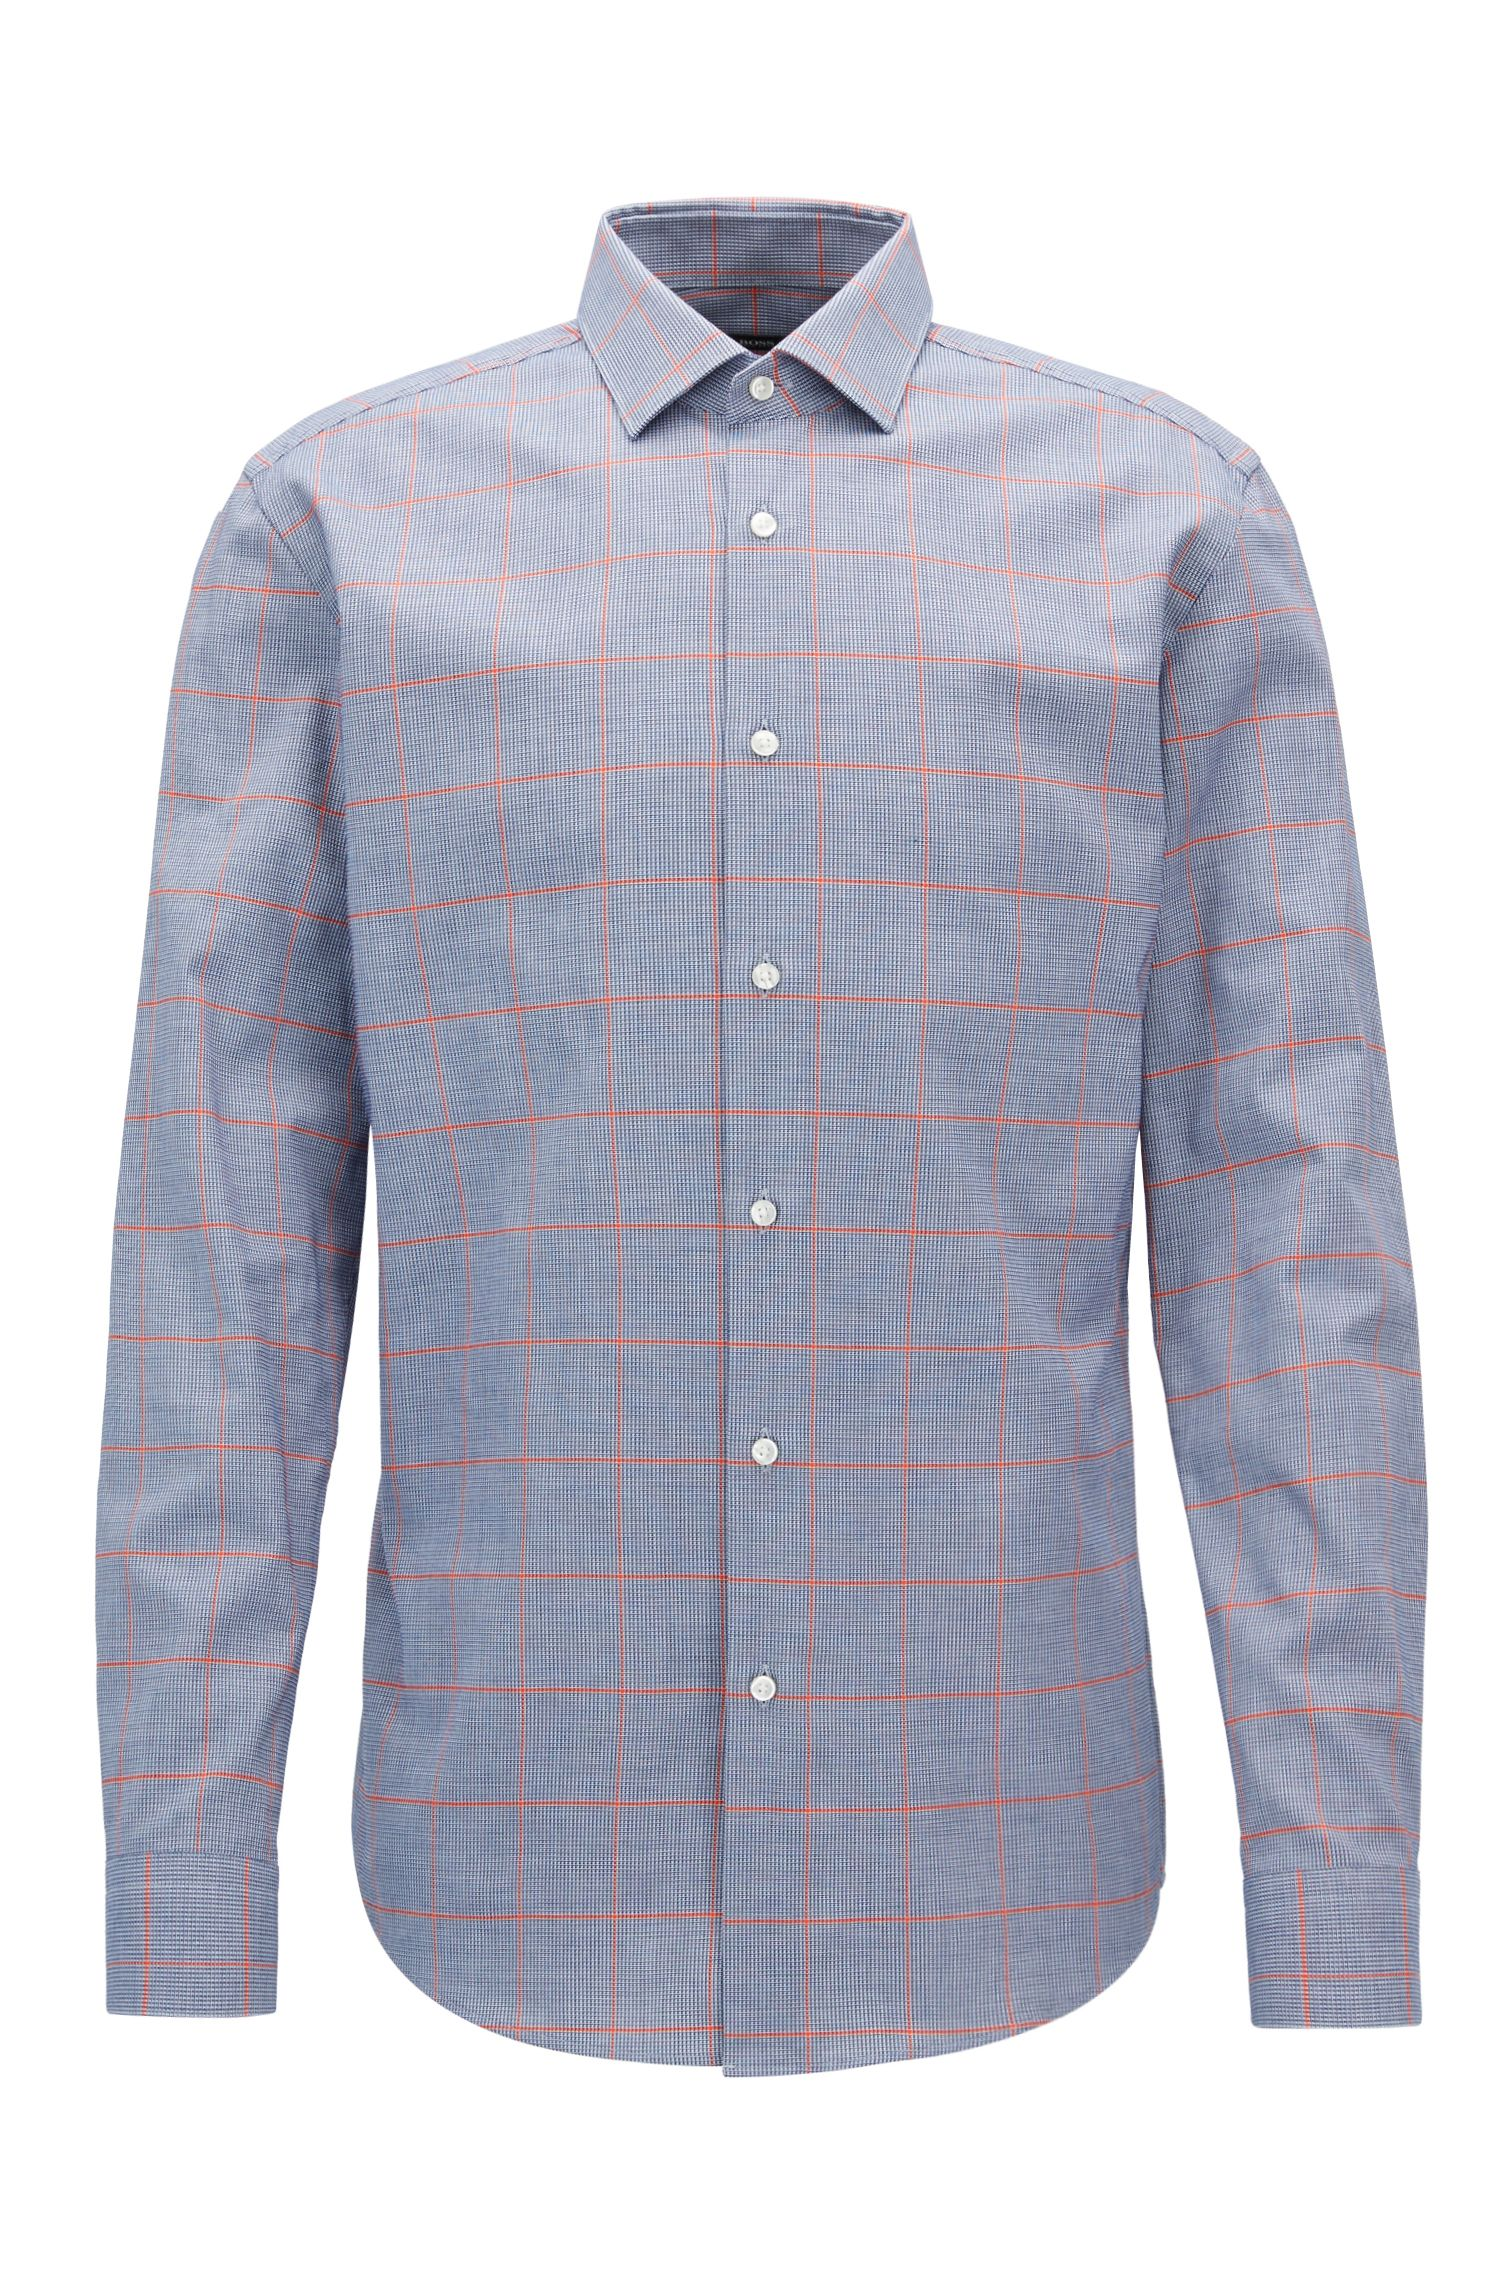 Windowpane Cotton Dress Shirt, Slim Fit | Ismo, Dark Blue